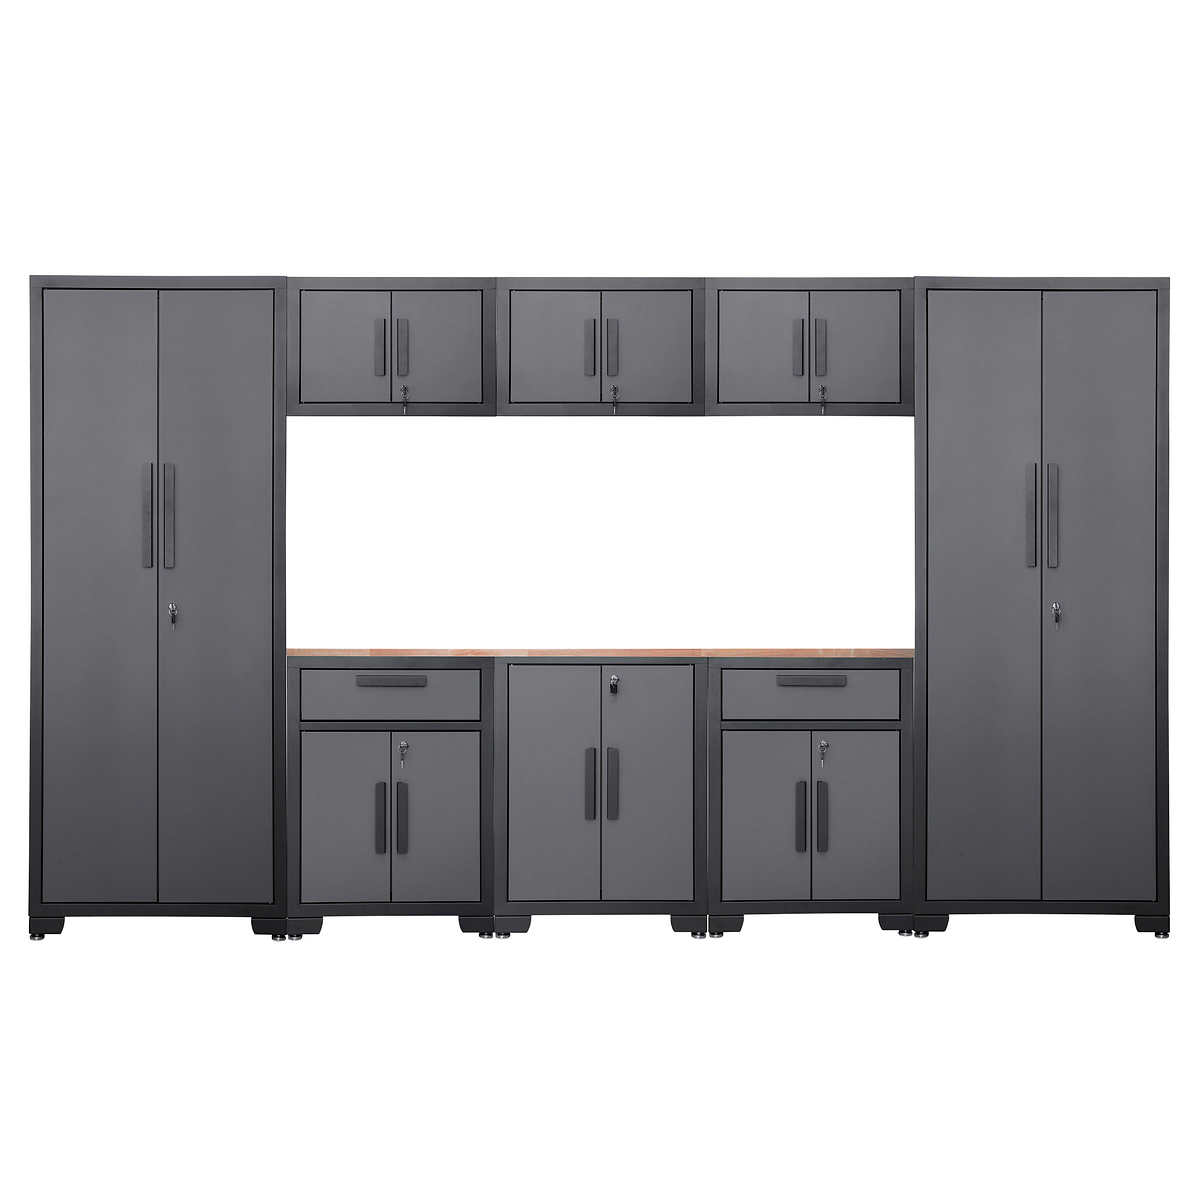 Torin 9 Piece Garage Cabinet Set